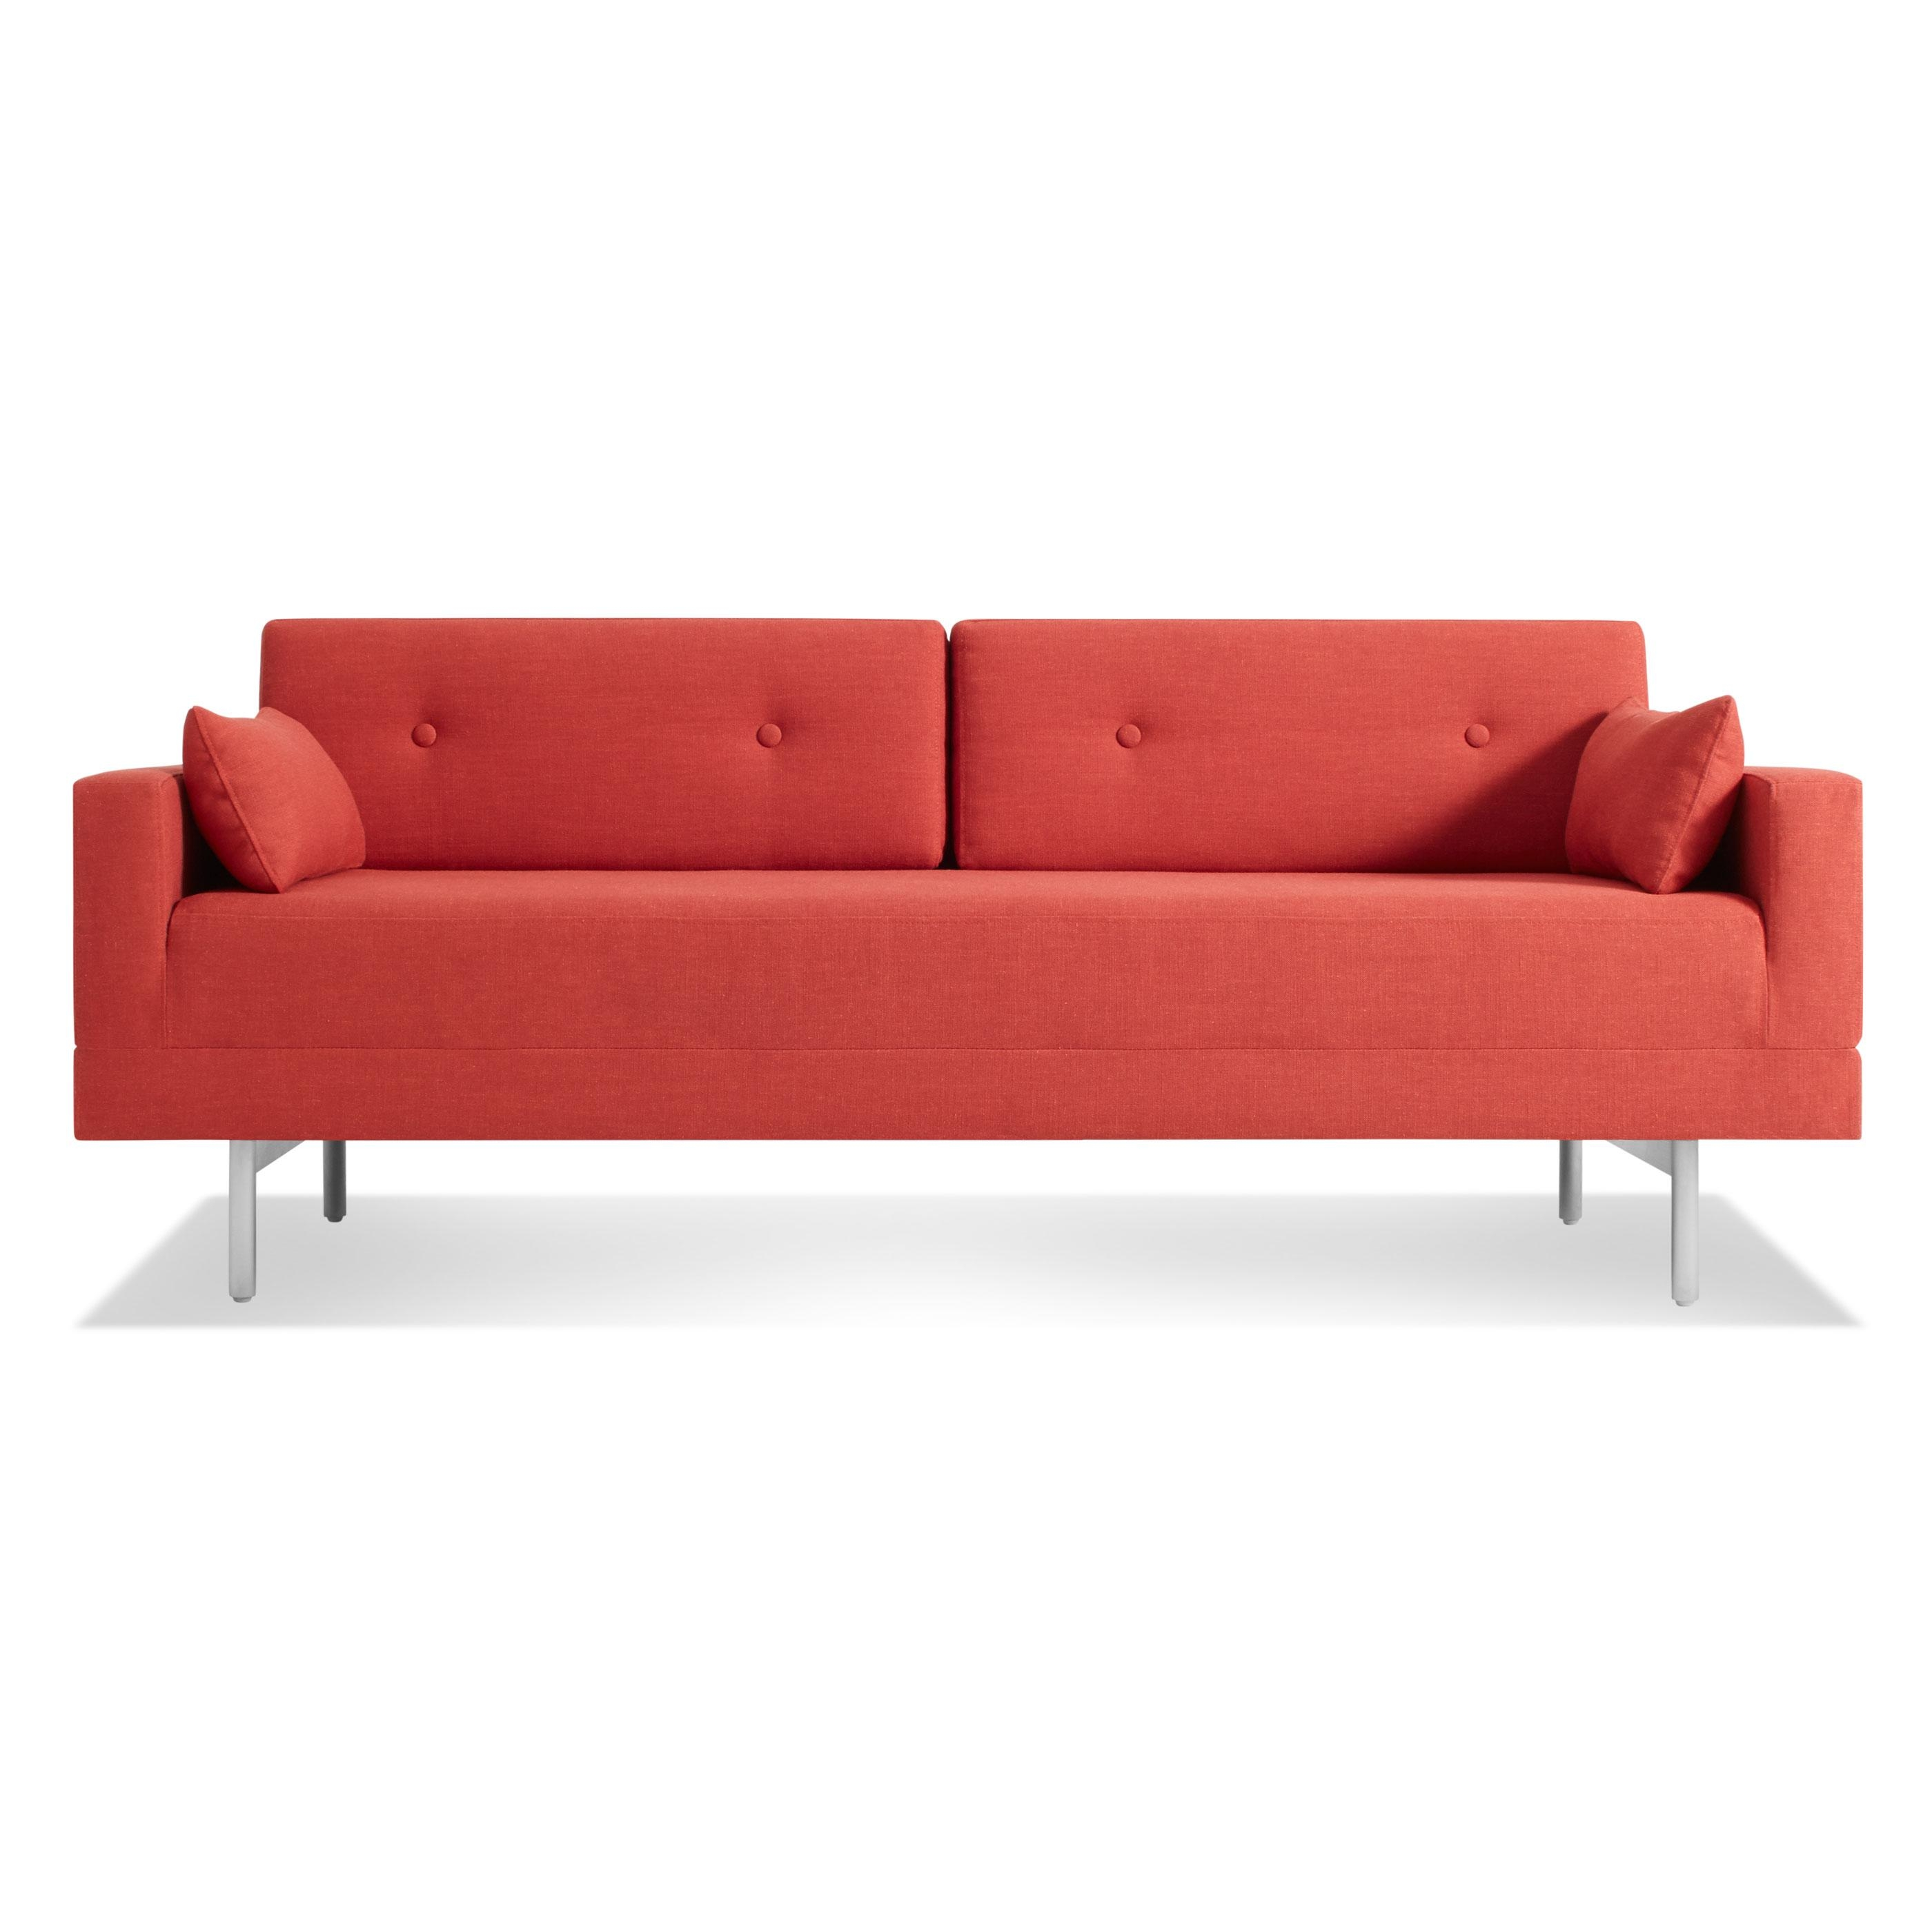 One Night Stand Modern Queen Sleeper Sofa | Blu Dot With Regard To Red Sleeper Sofa (Image 10 of 20)